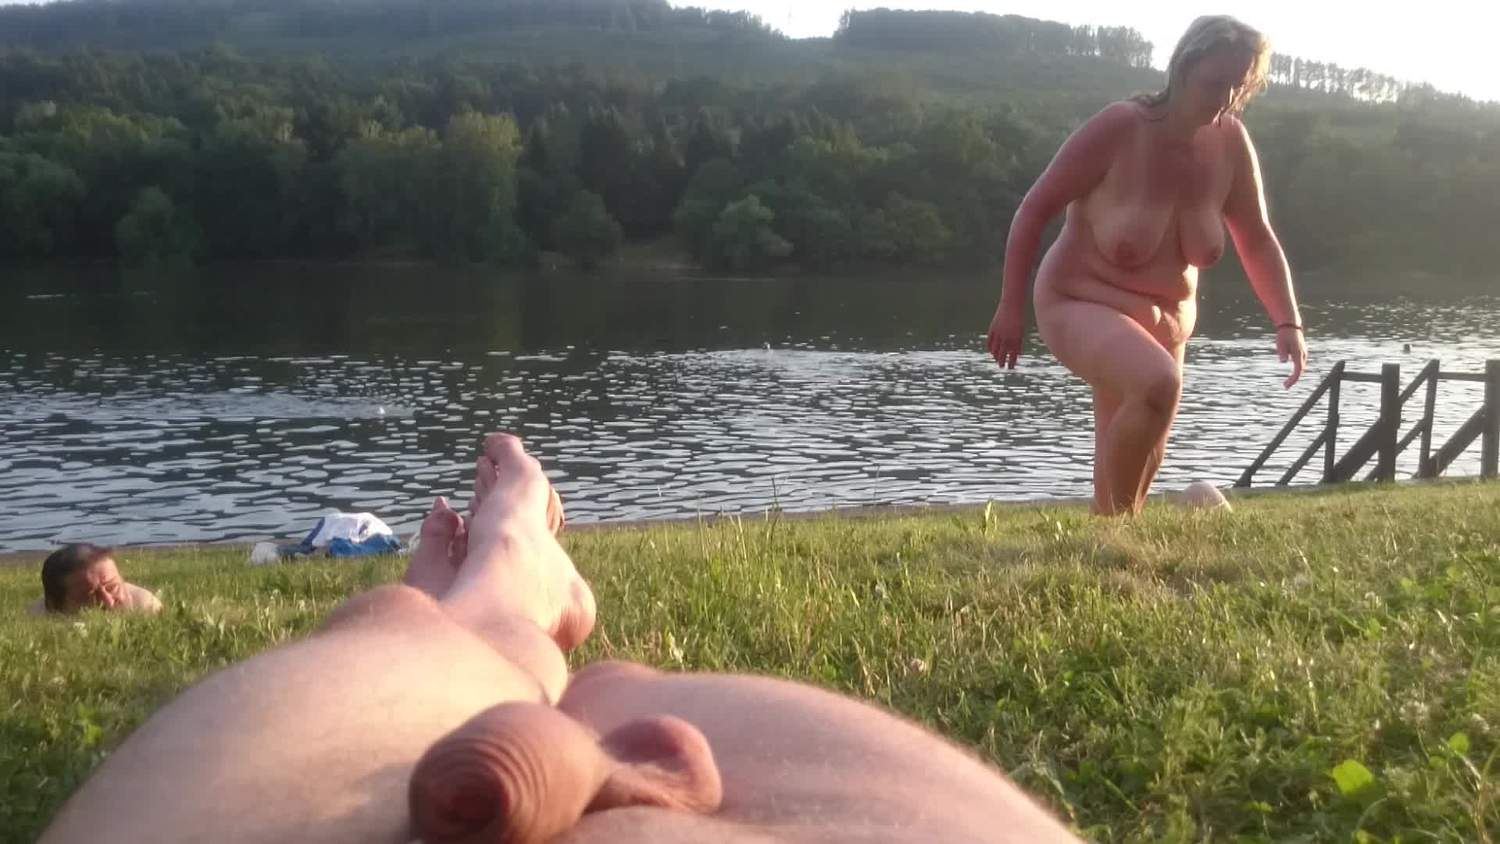 Nice large saggy swinging tits climbing a hill